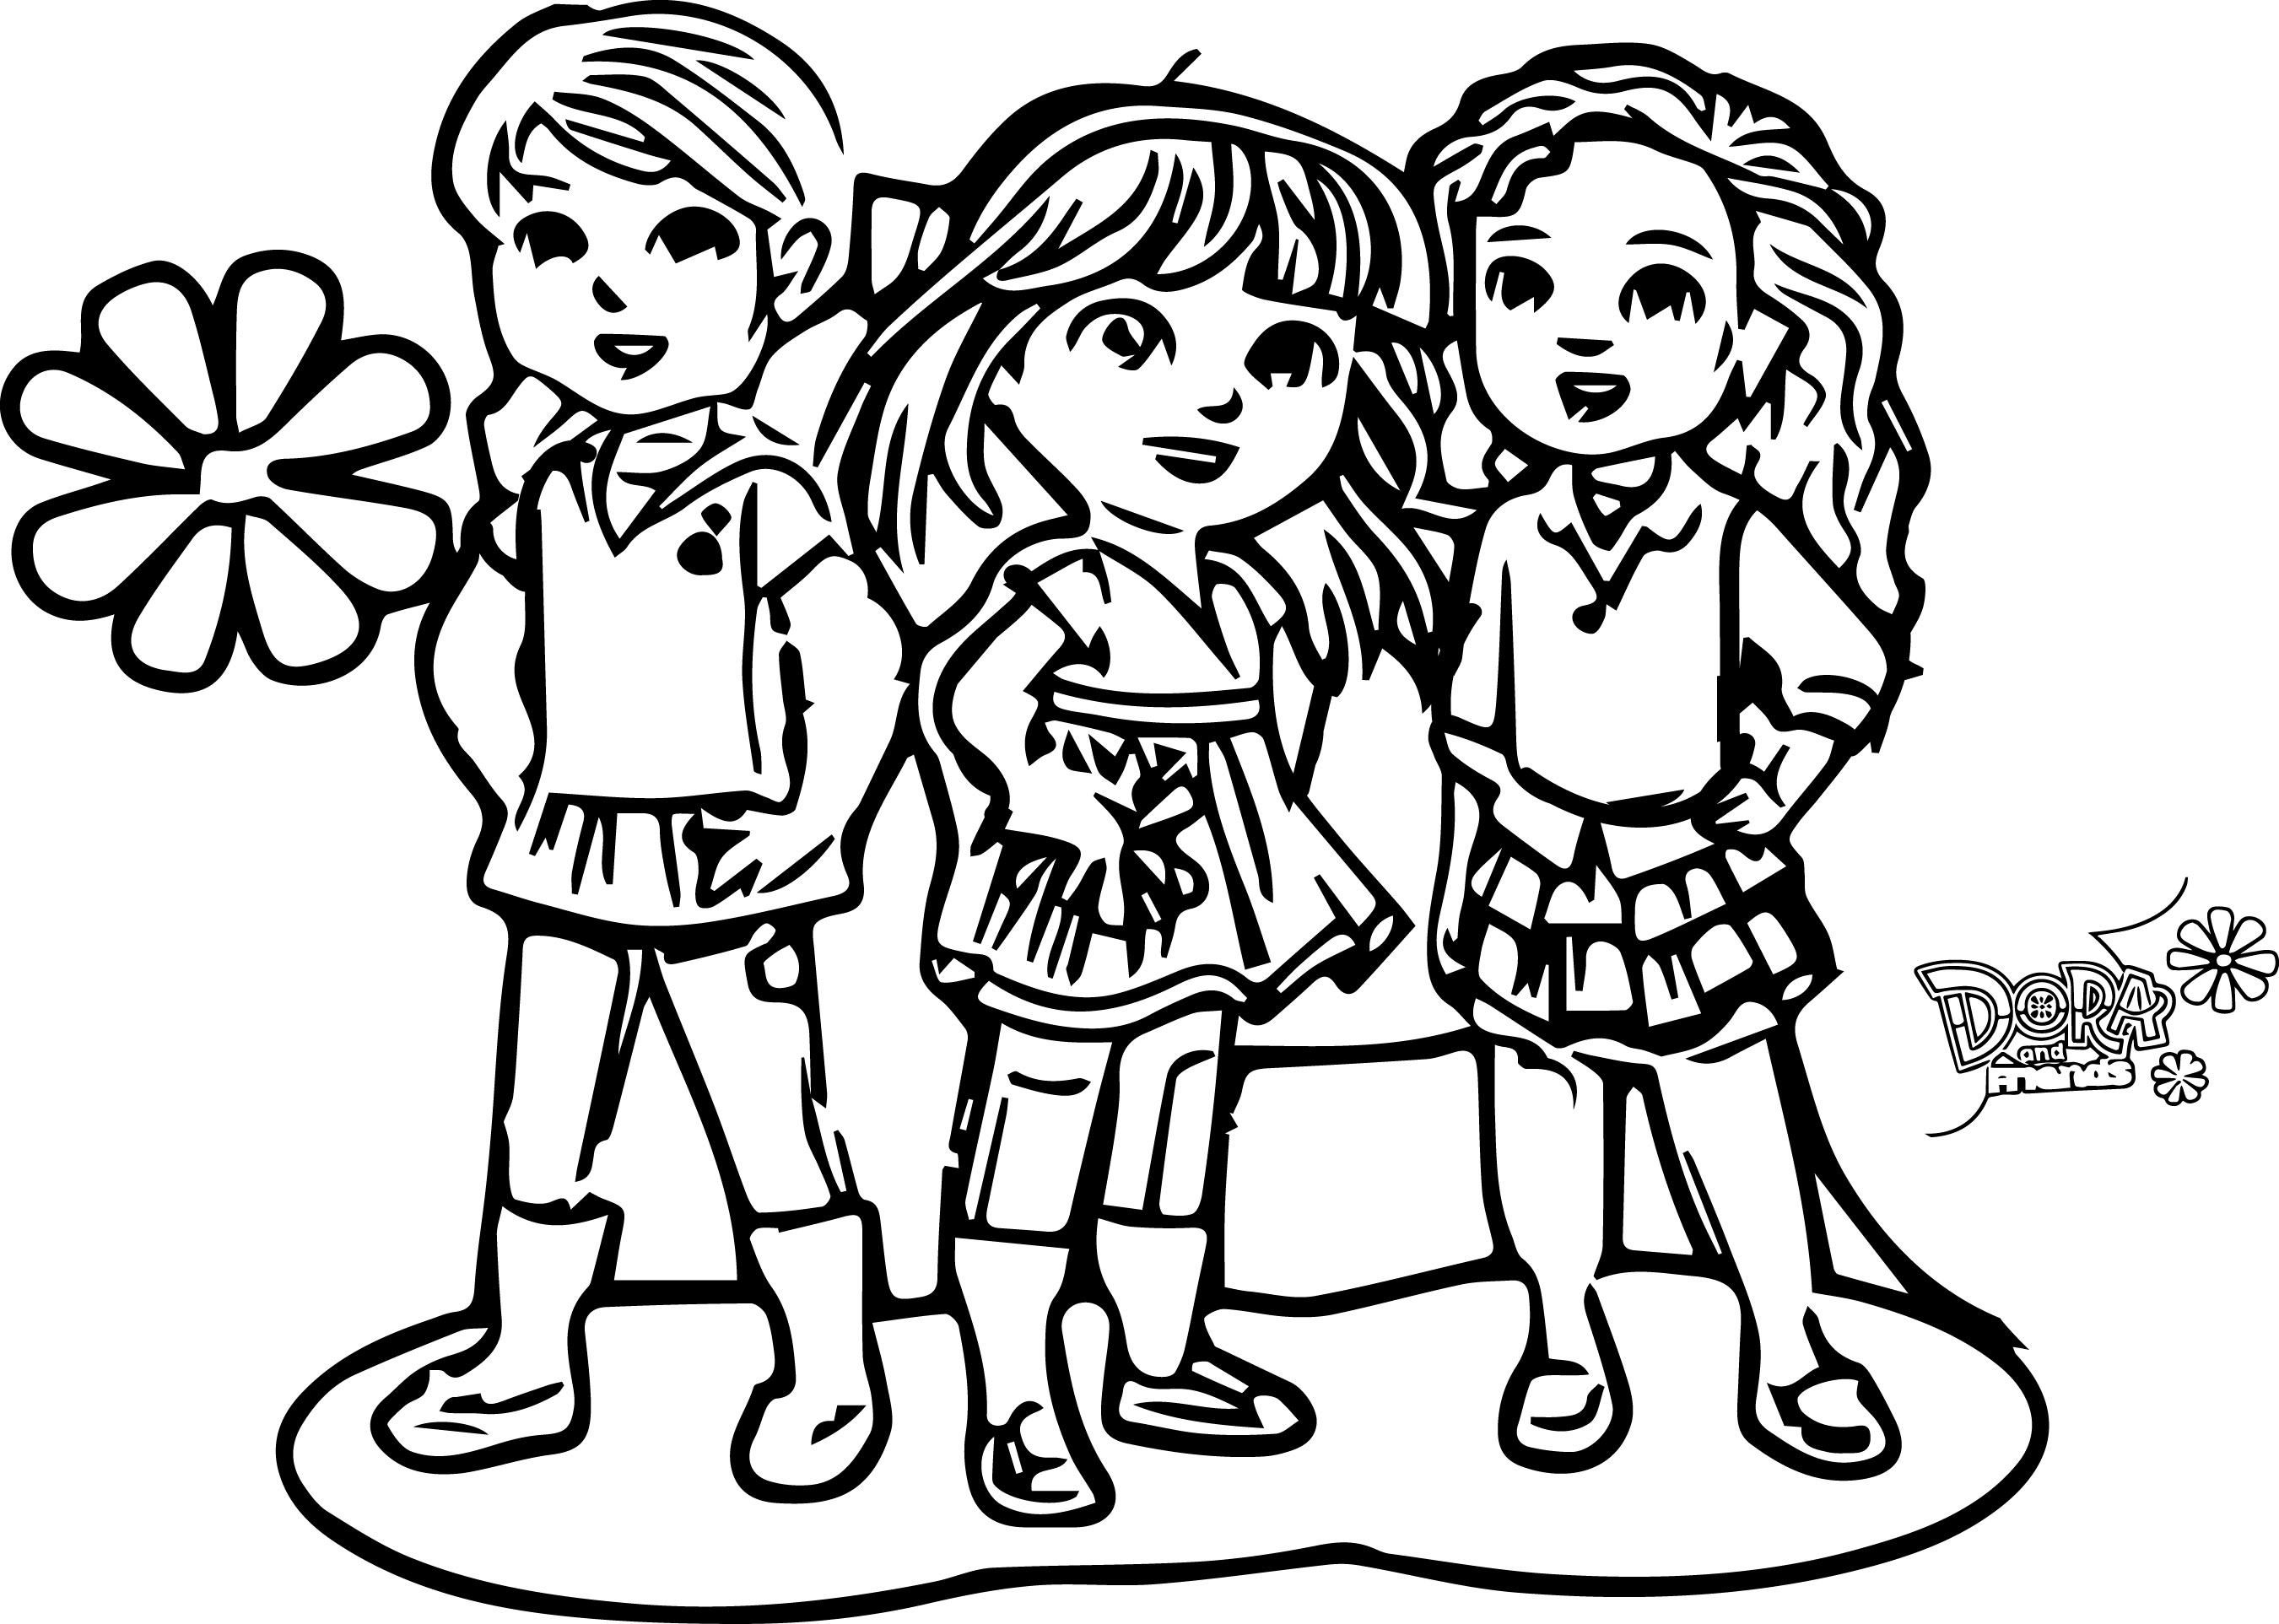 20 Dora and Friends Coloring Pages Collections | FREE COLORING PAGES ...